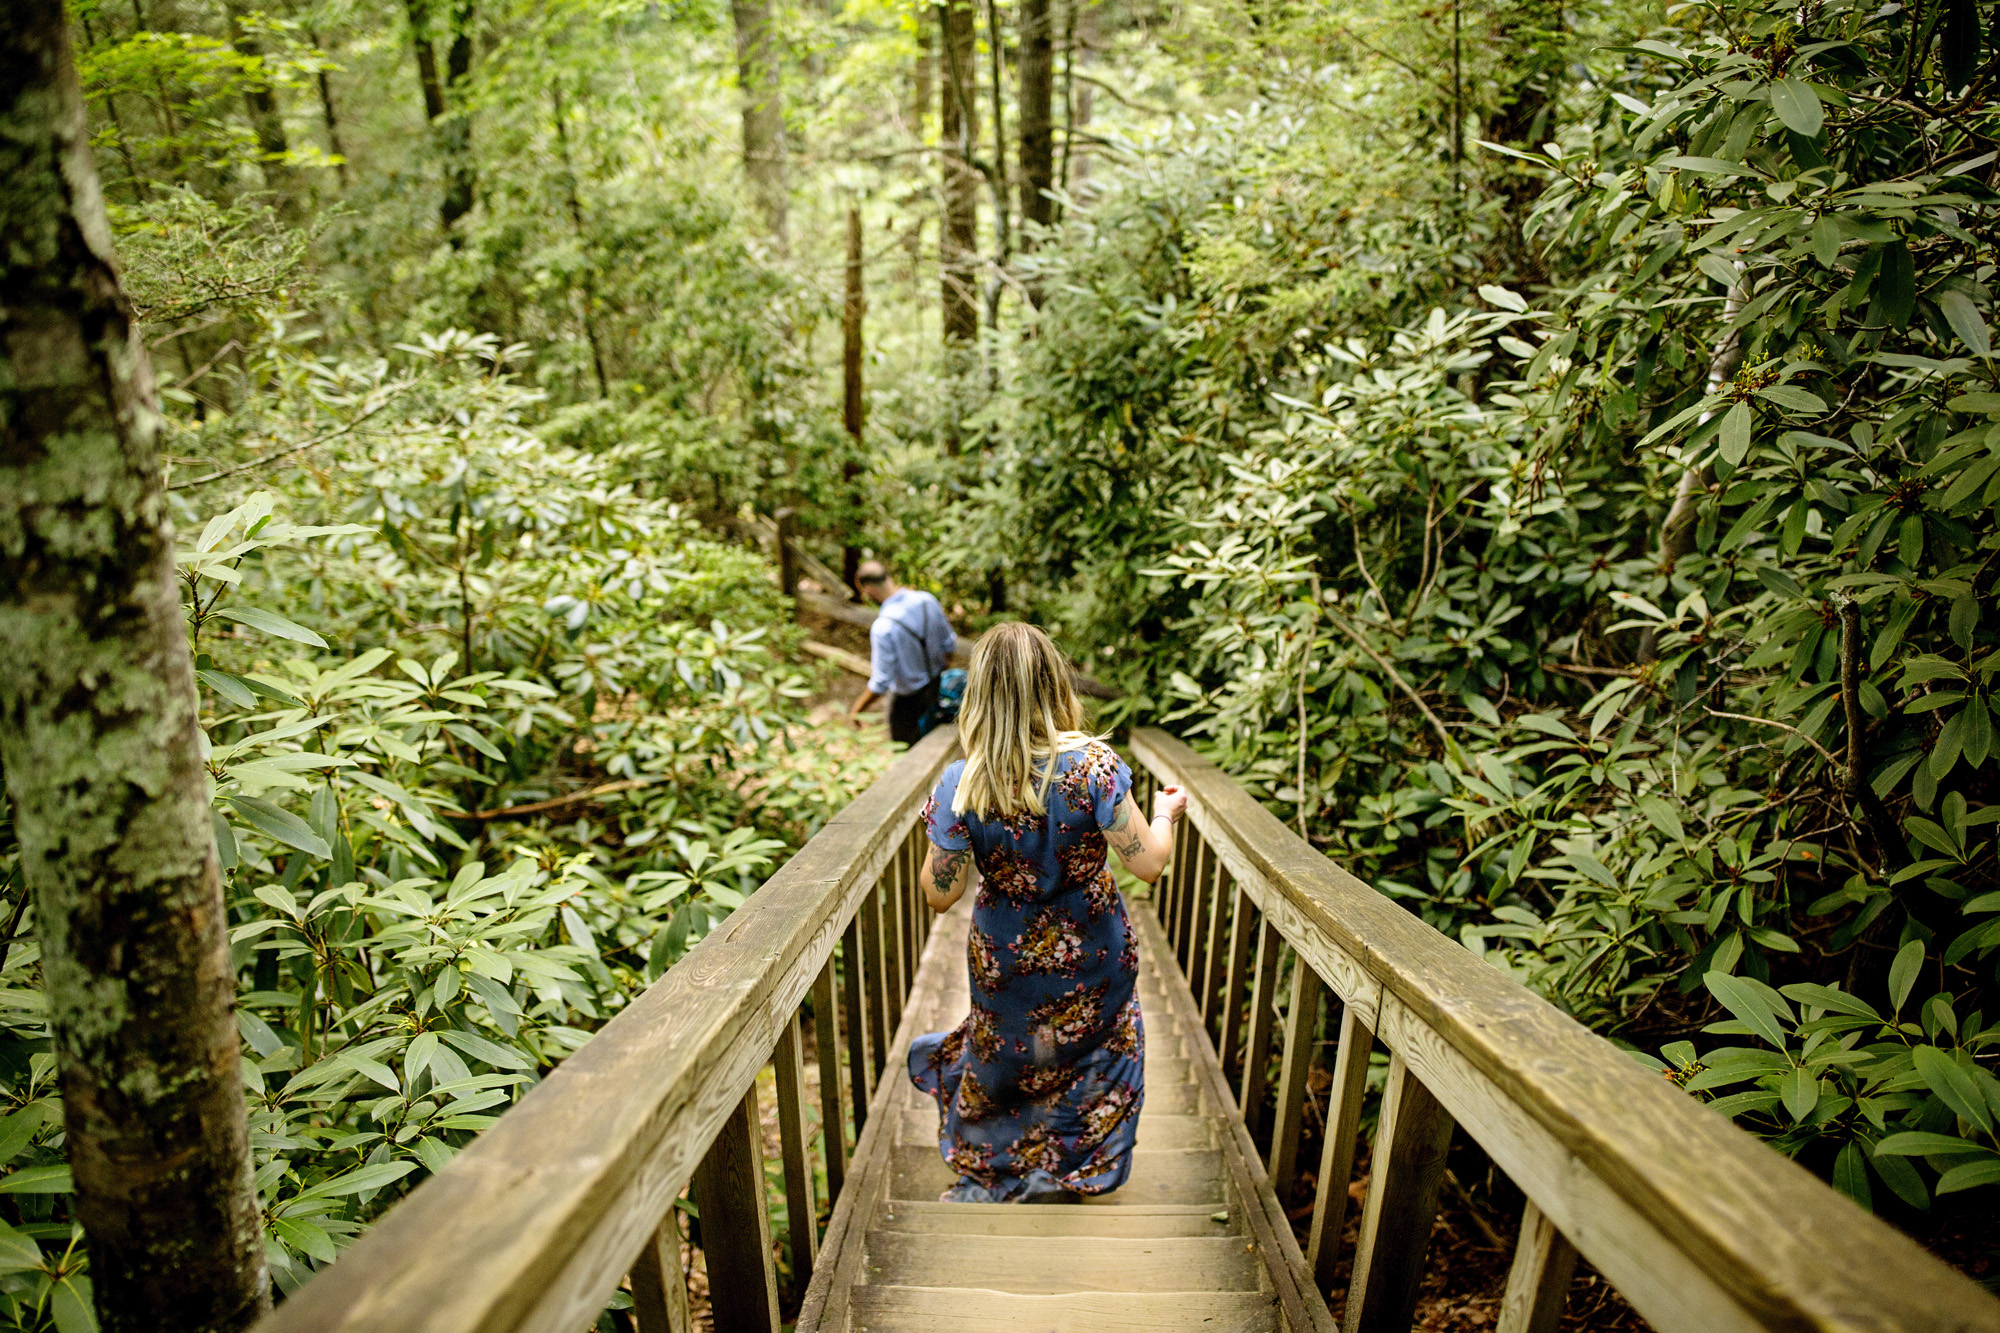 Seriously_Sabrina_Photography_Red_River_Gorge_Engagement_Session_Monika_Steven_18.jpg